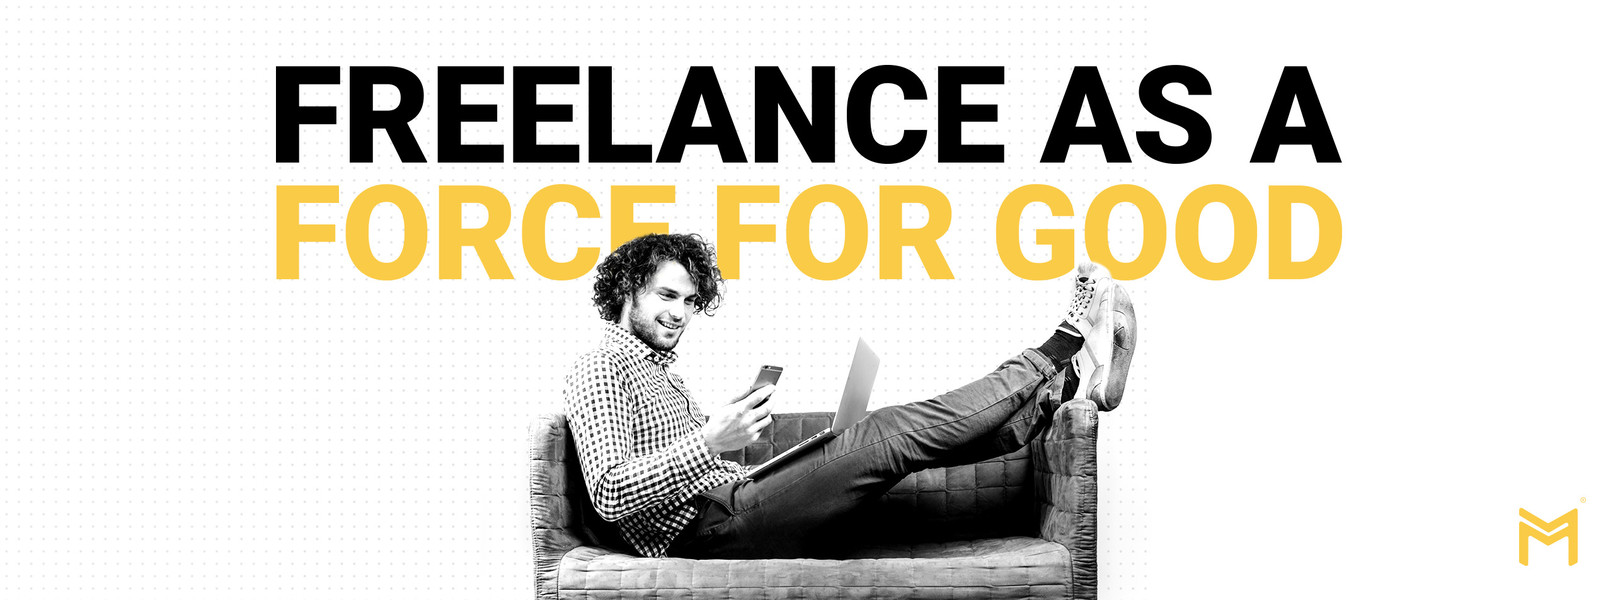 Freelance as a Force for Good